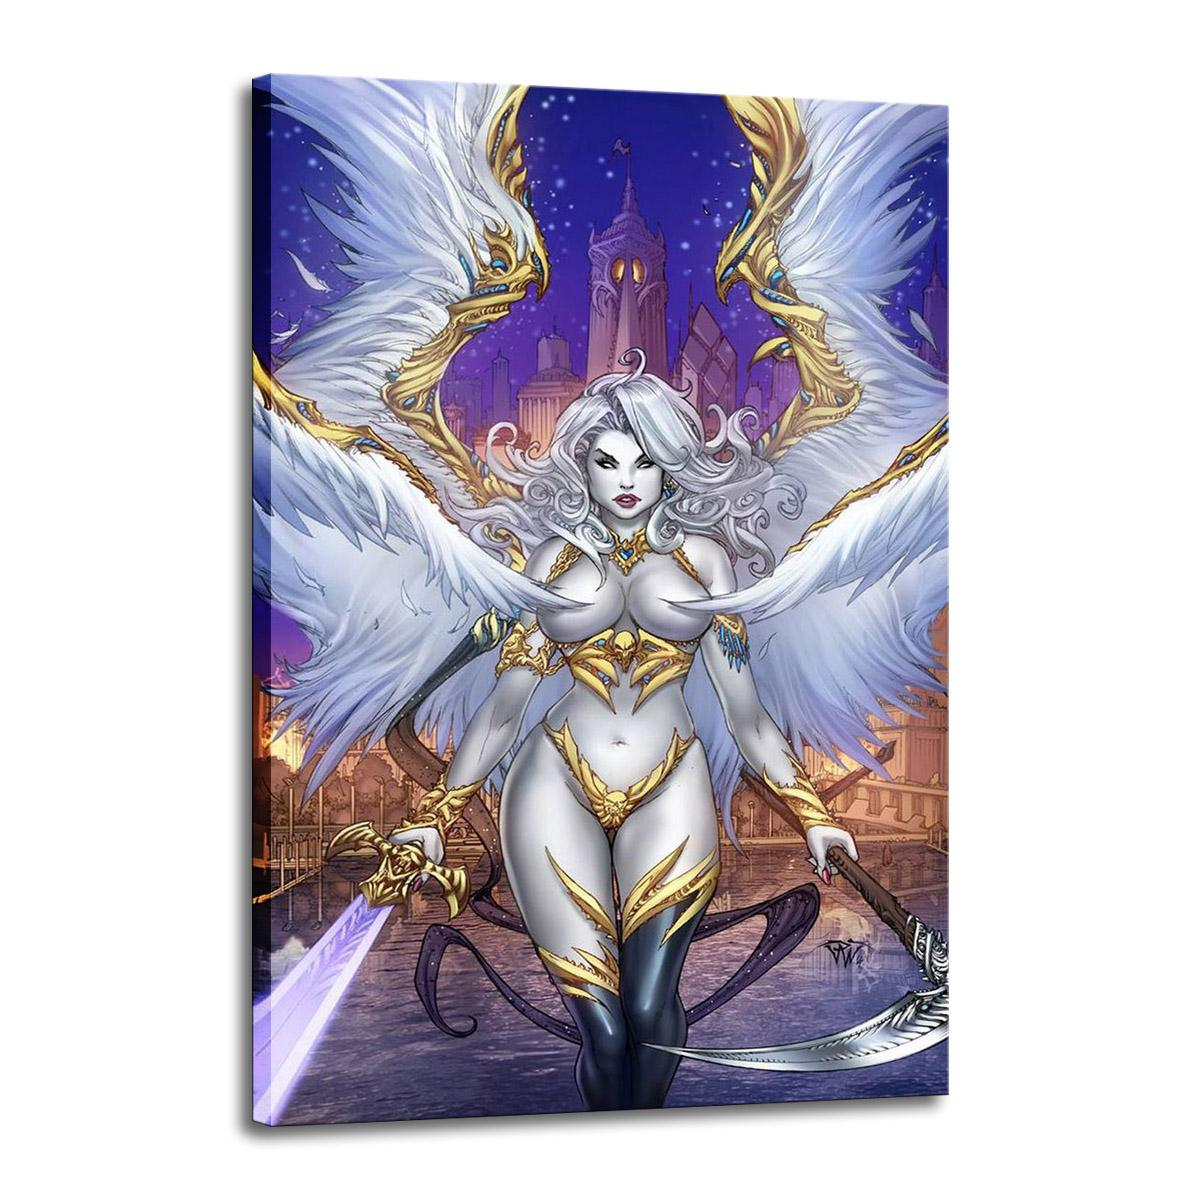 Art Lady Death Oil Painting Print On Canvas Modern Wall Art Modular Wall Pictures For Living Room Deco 2507